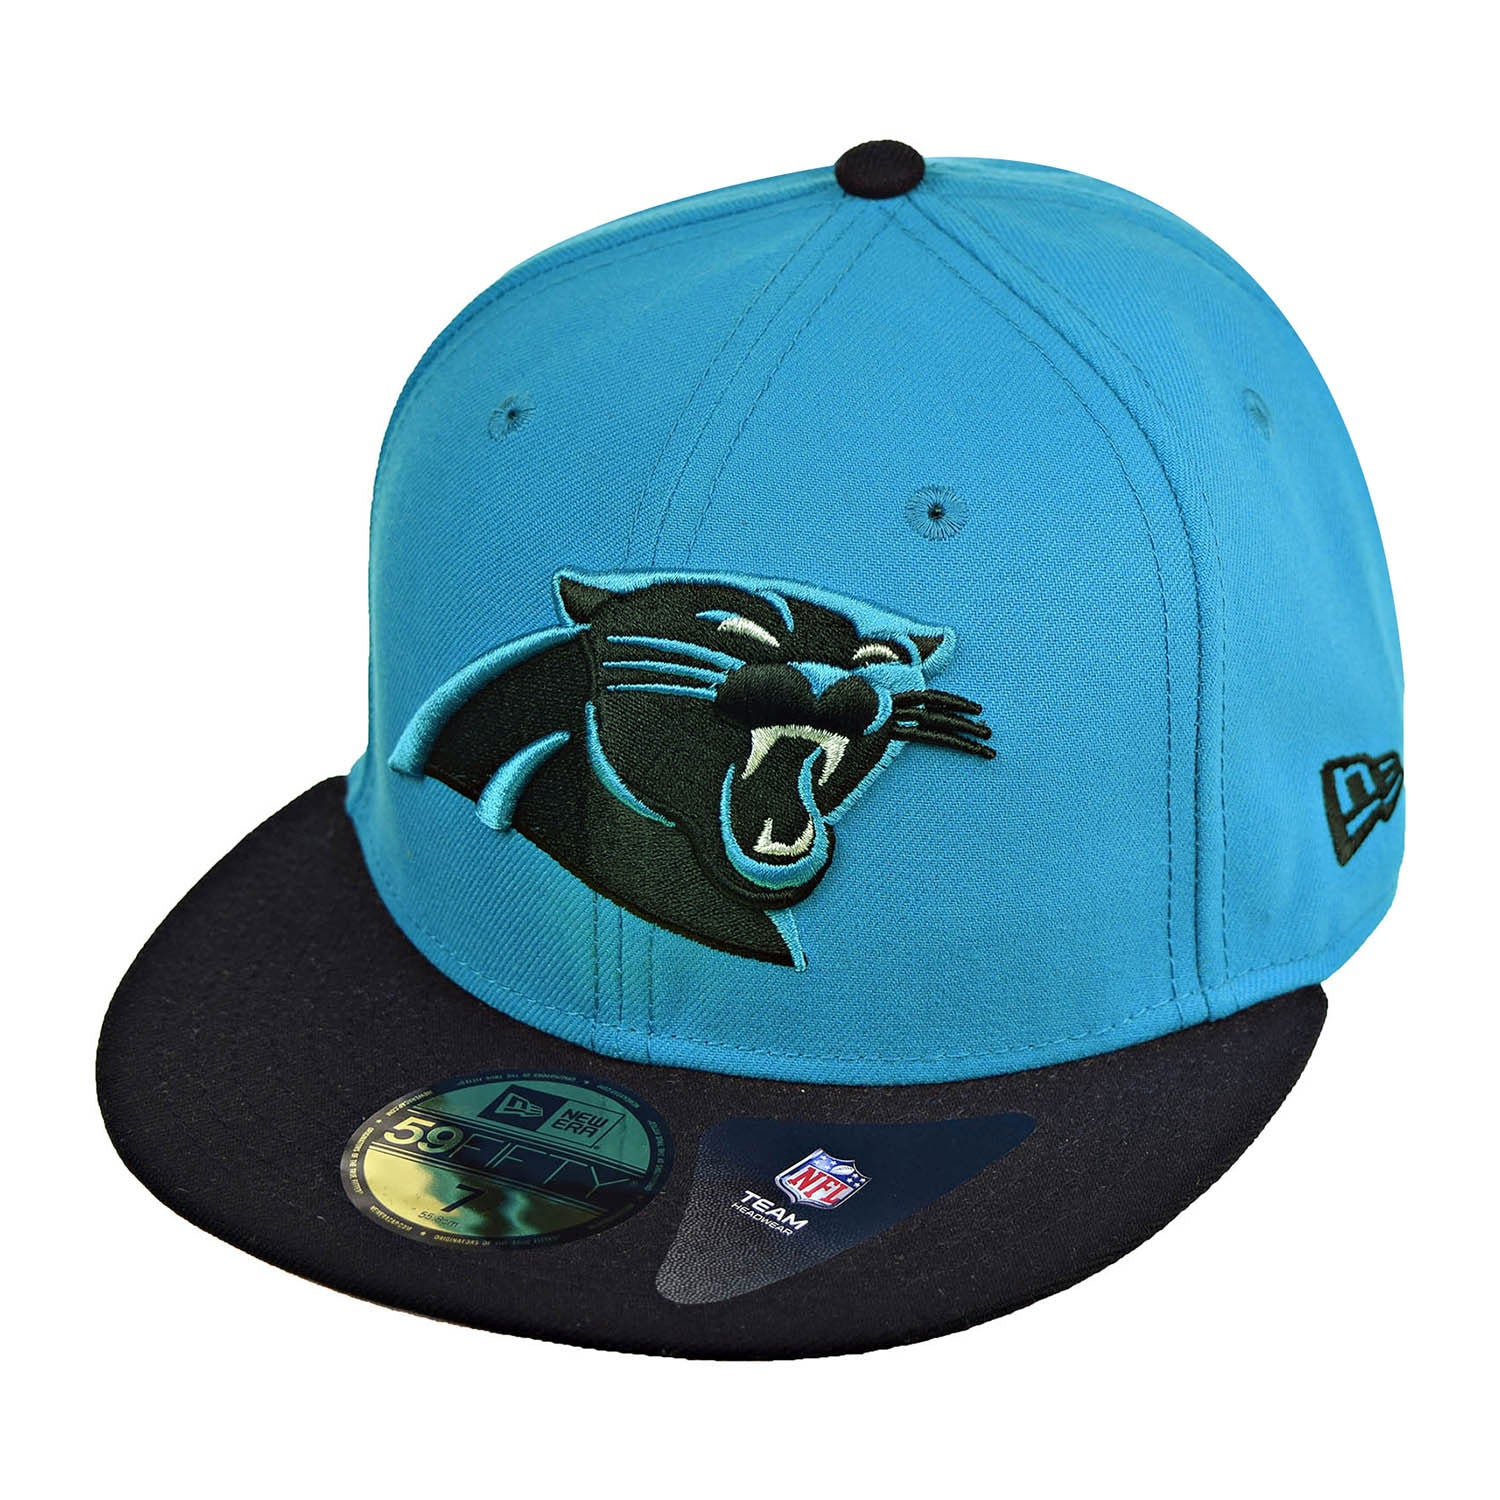 New Era Carolina Panthers NFL 2Tone 59Fifty Men's Fitted Hat Cap Blue/Black